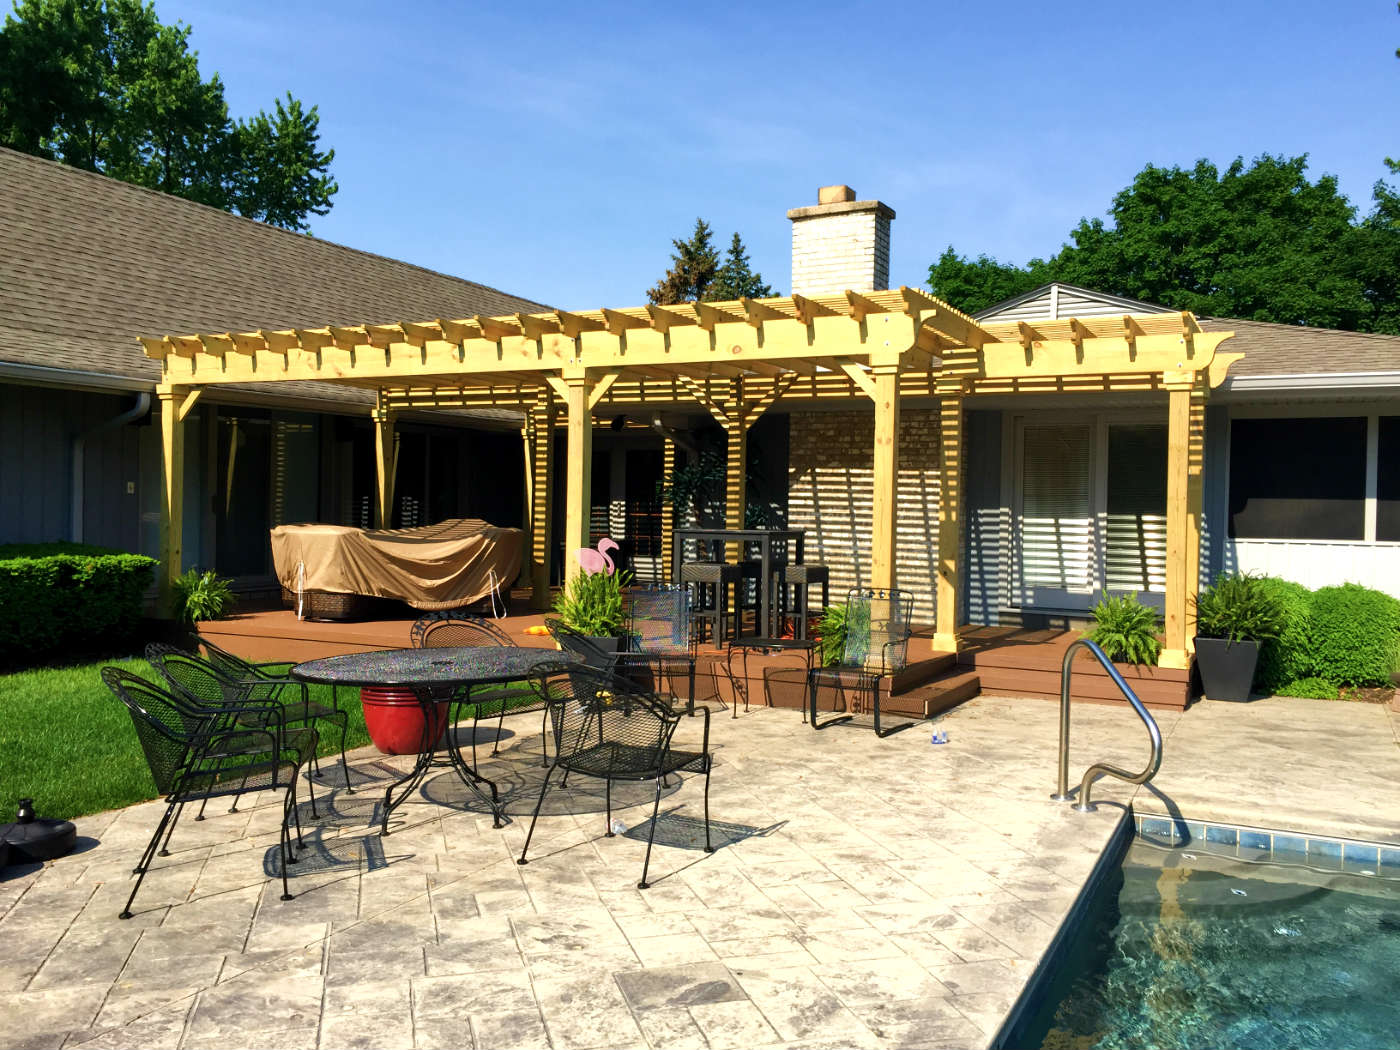 Top 4 Things To Consider When Planning A Poolside Deck Or